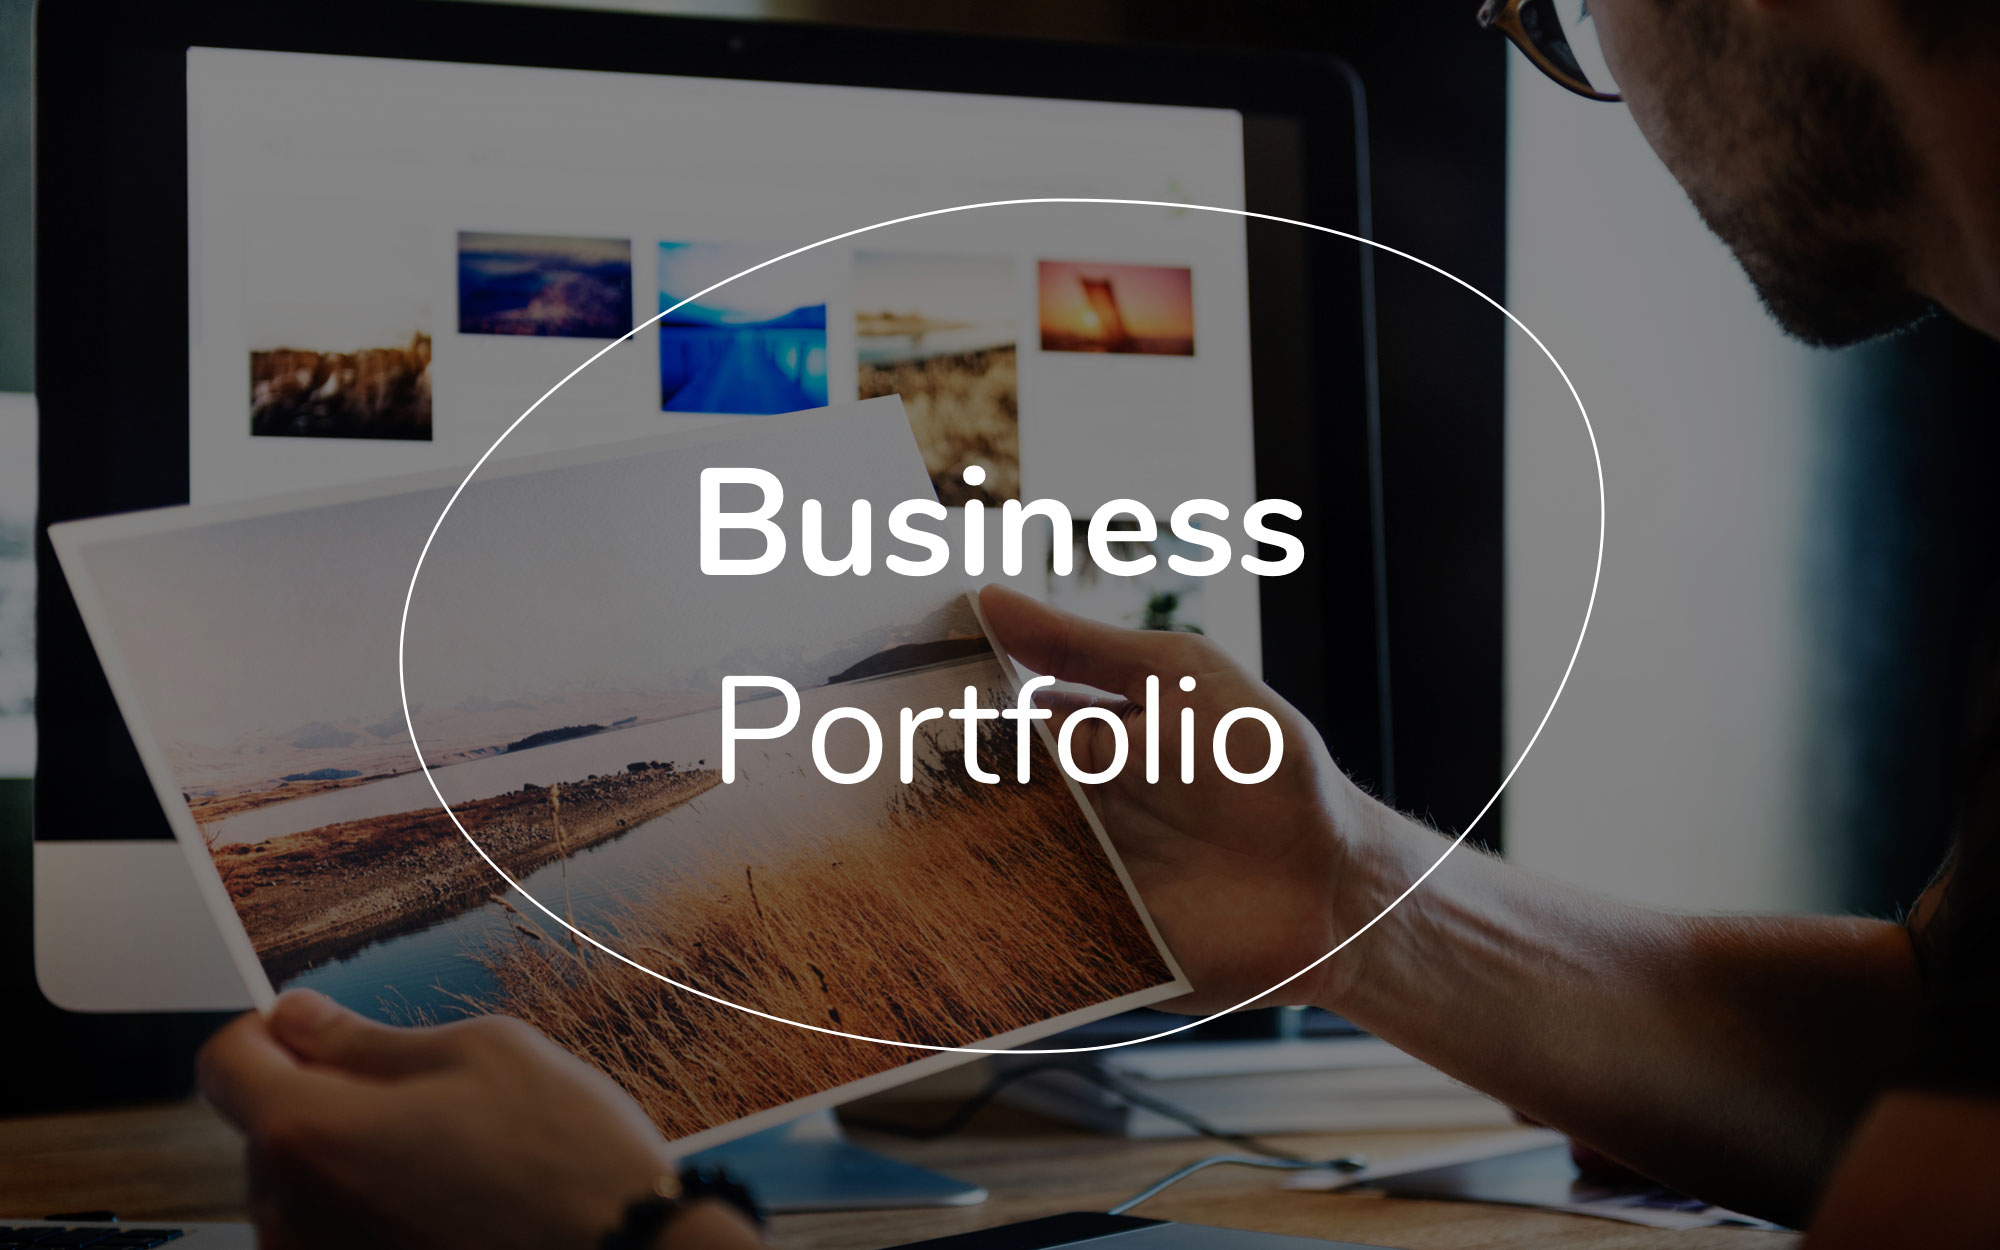 Business portfolio template free pdf ppt download slidebean business portfolio template free pdf ppt download friedricerecipe Image collections